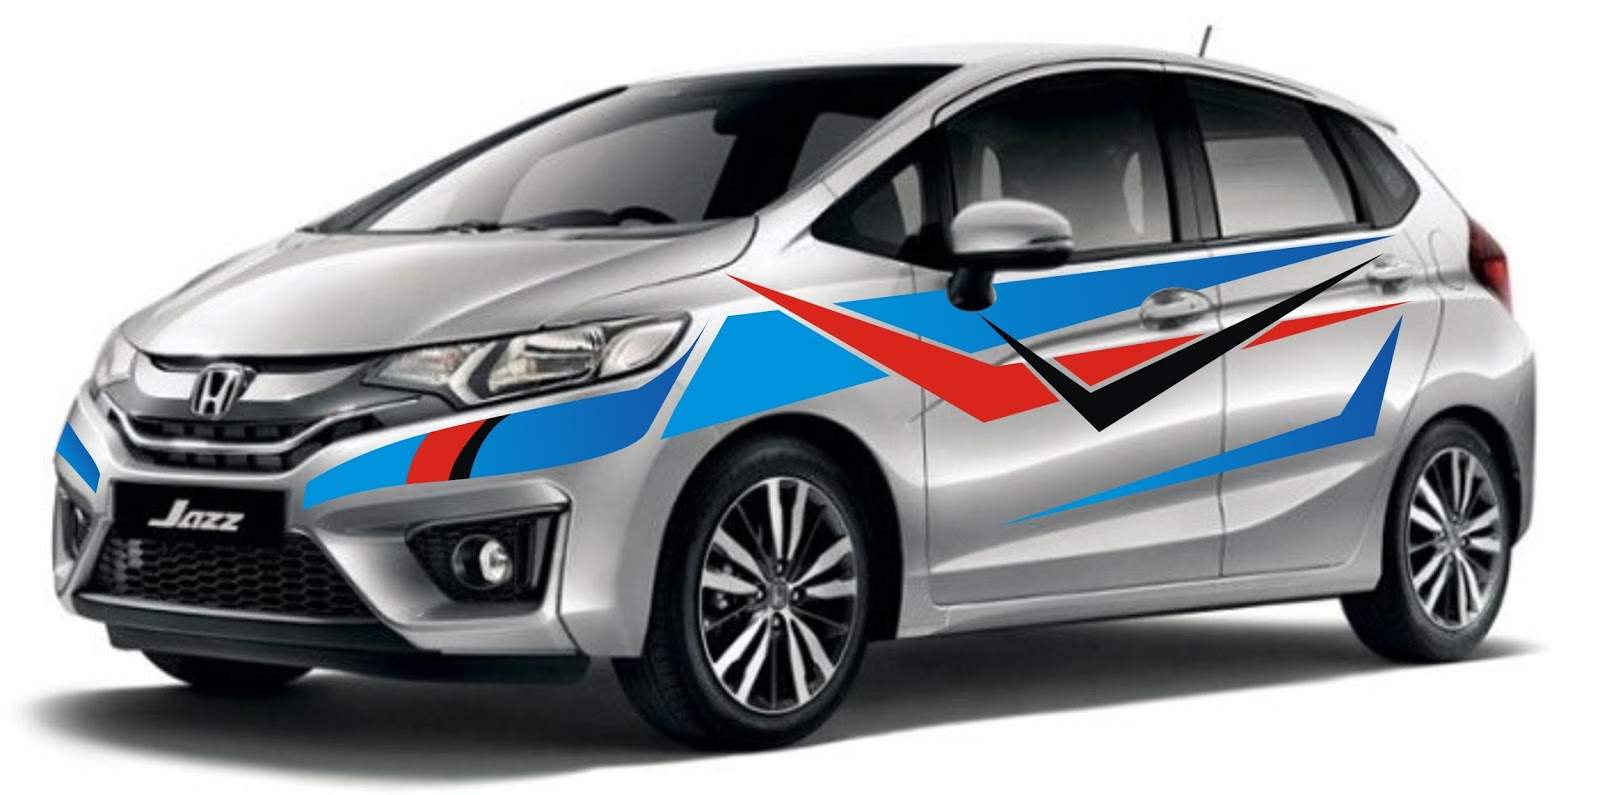 New design stickers honda jazz themed tribal taken inspiration from racing cars whose body sporty like the honda jazz in addition to the body very slim so